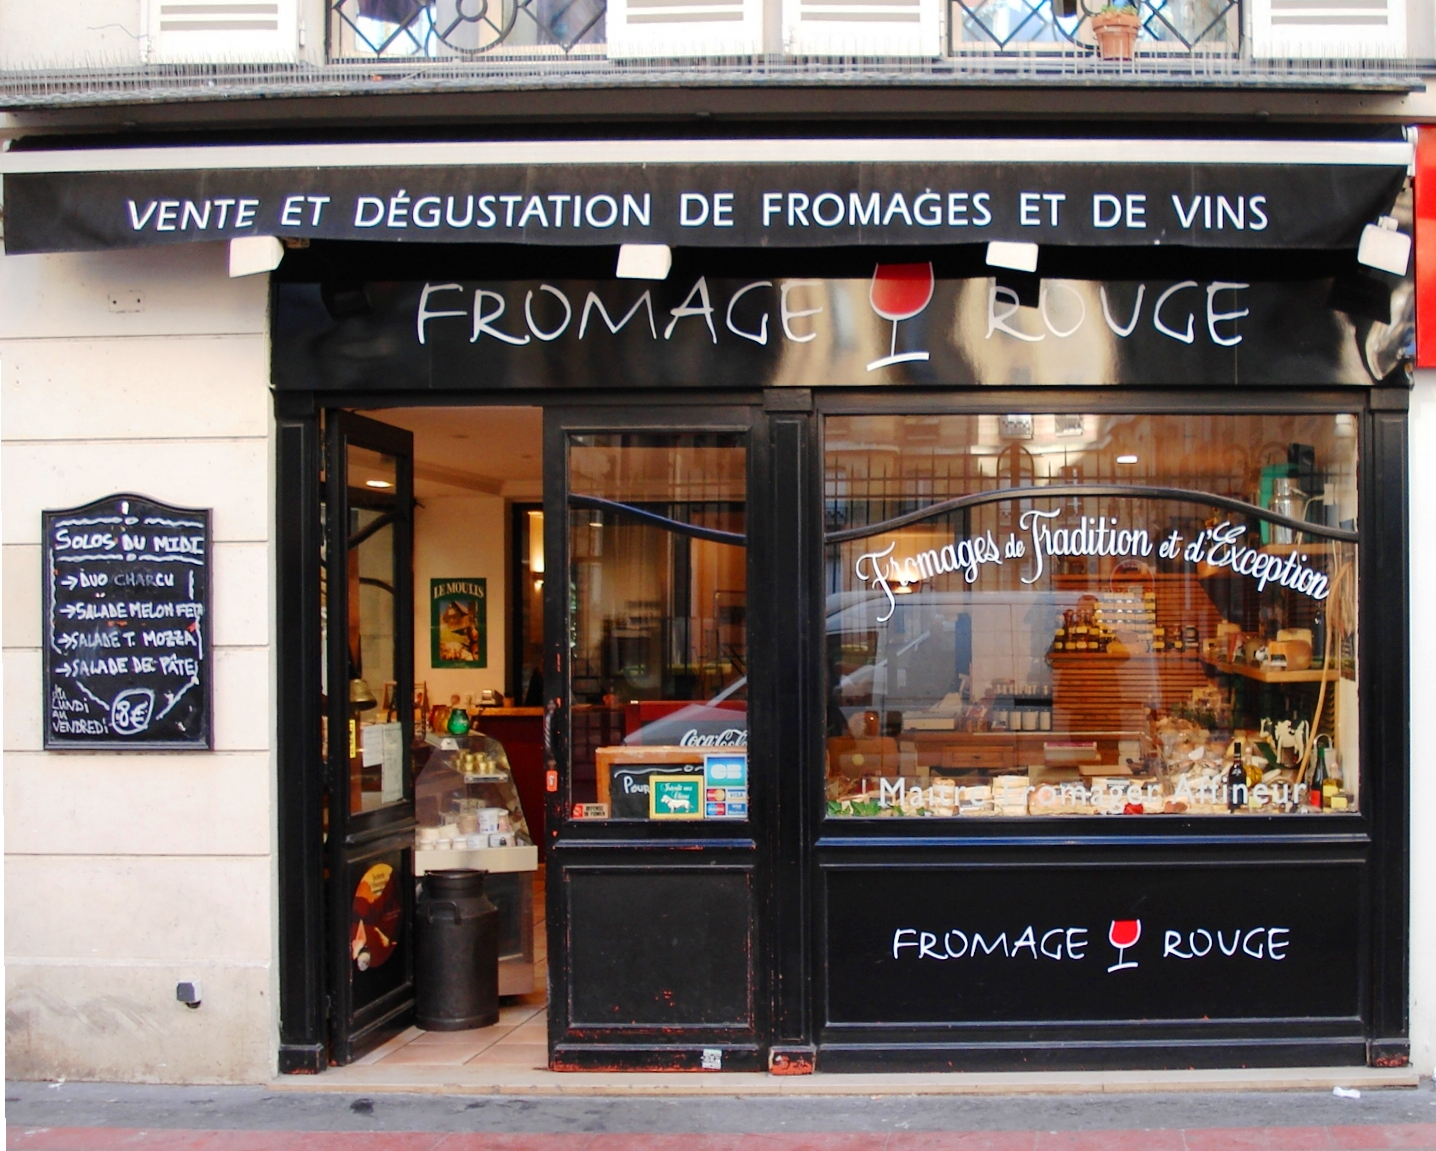 http://upload.wikimedia.org/wikipedia/commons/3/37/Fromagerie.jpg